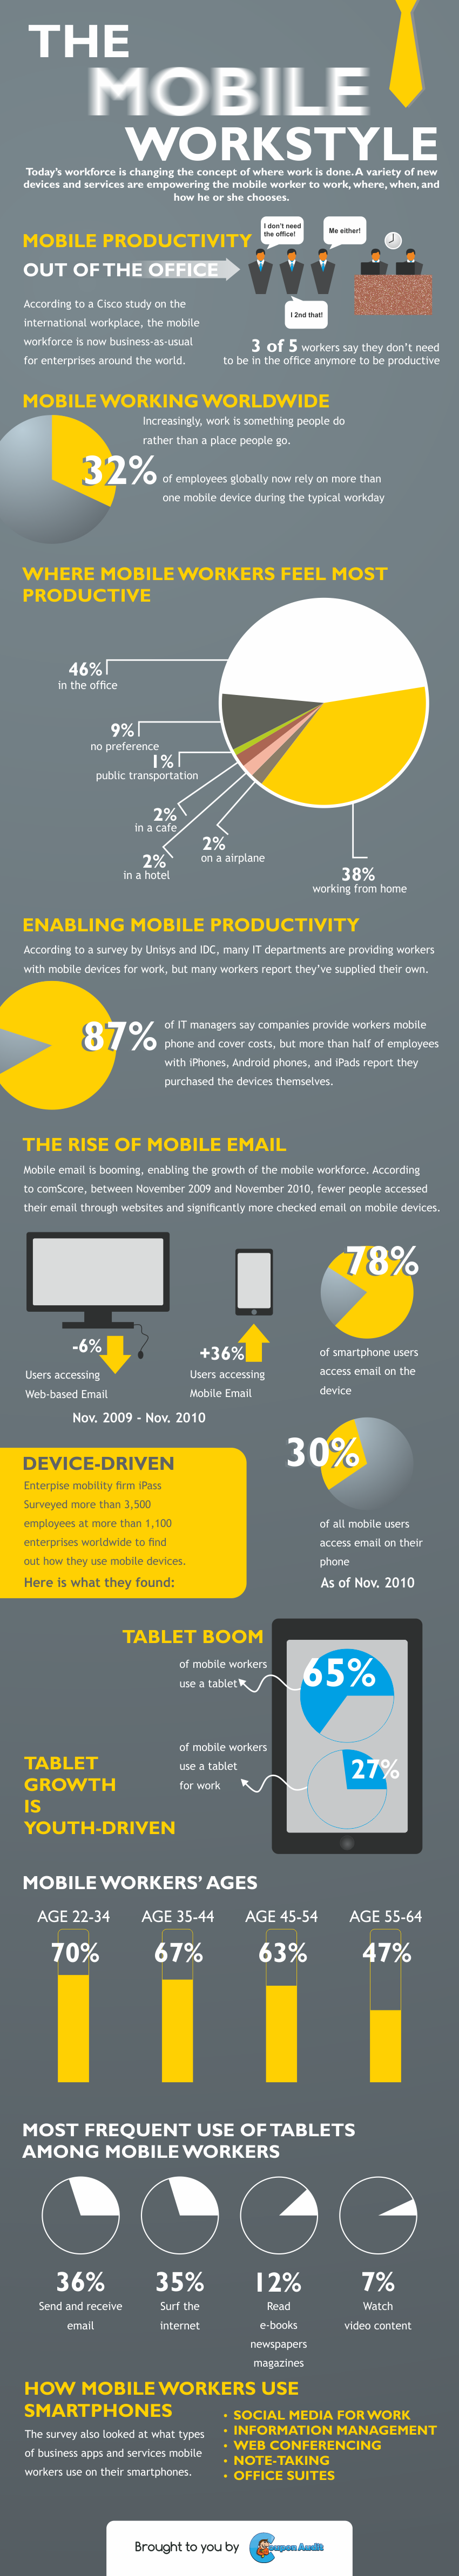 The Mobile Workstyle [Infographic]